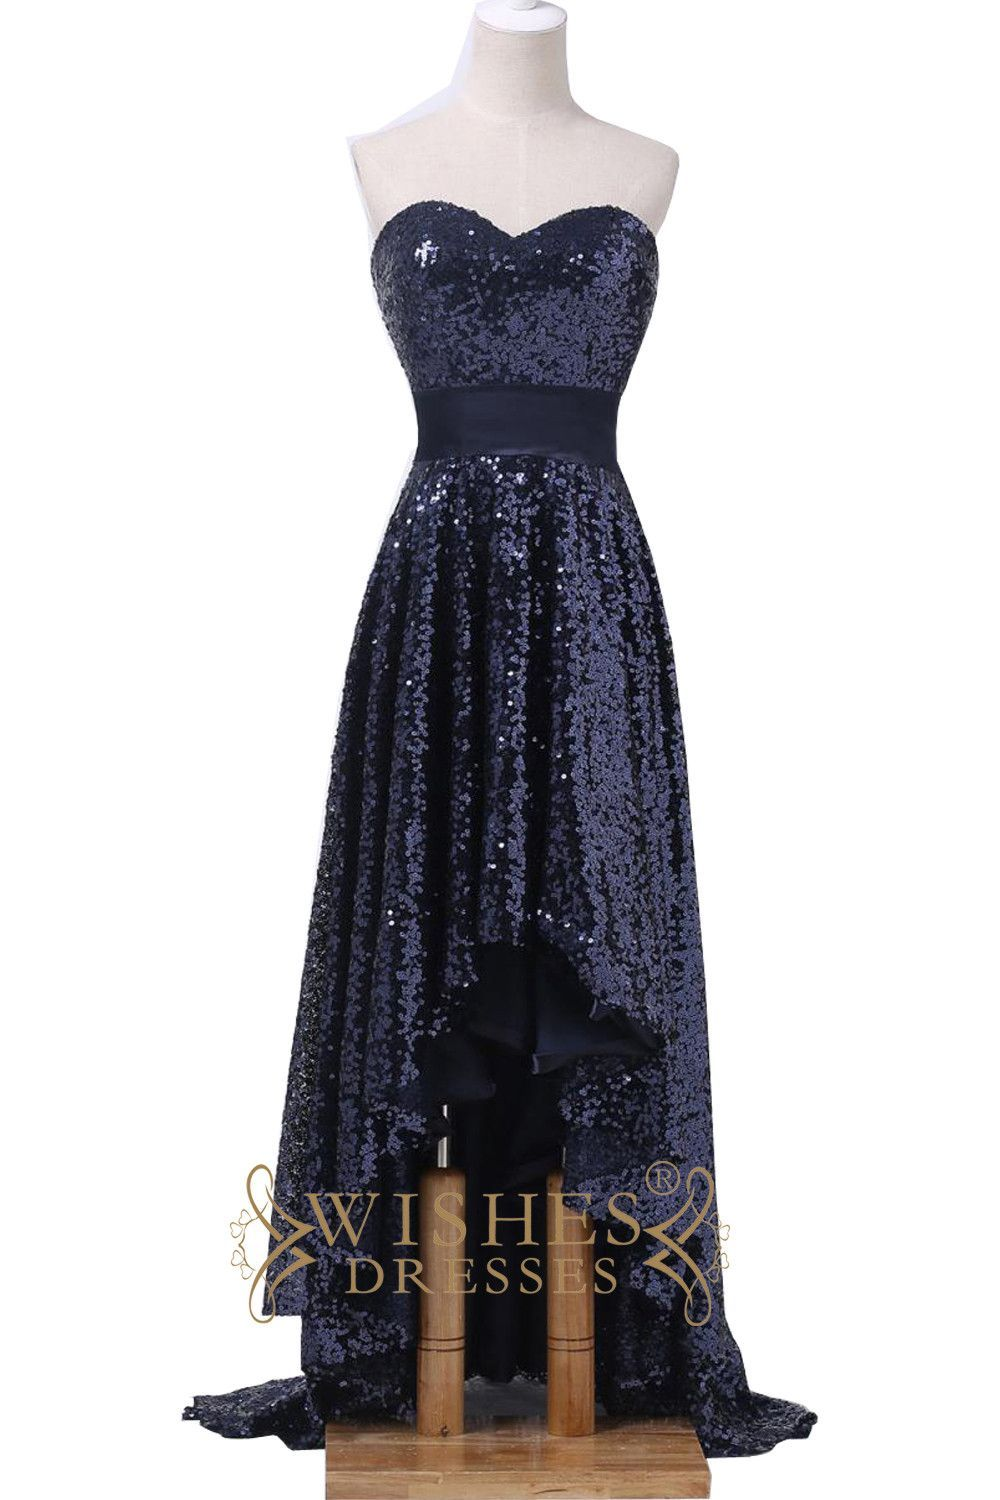 79a6dca8d36175 This hi-lo dress make of shiny dark navy sequins cloth while the top cut  sweetheart neckline